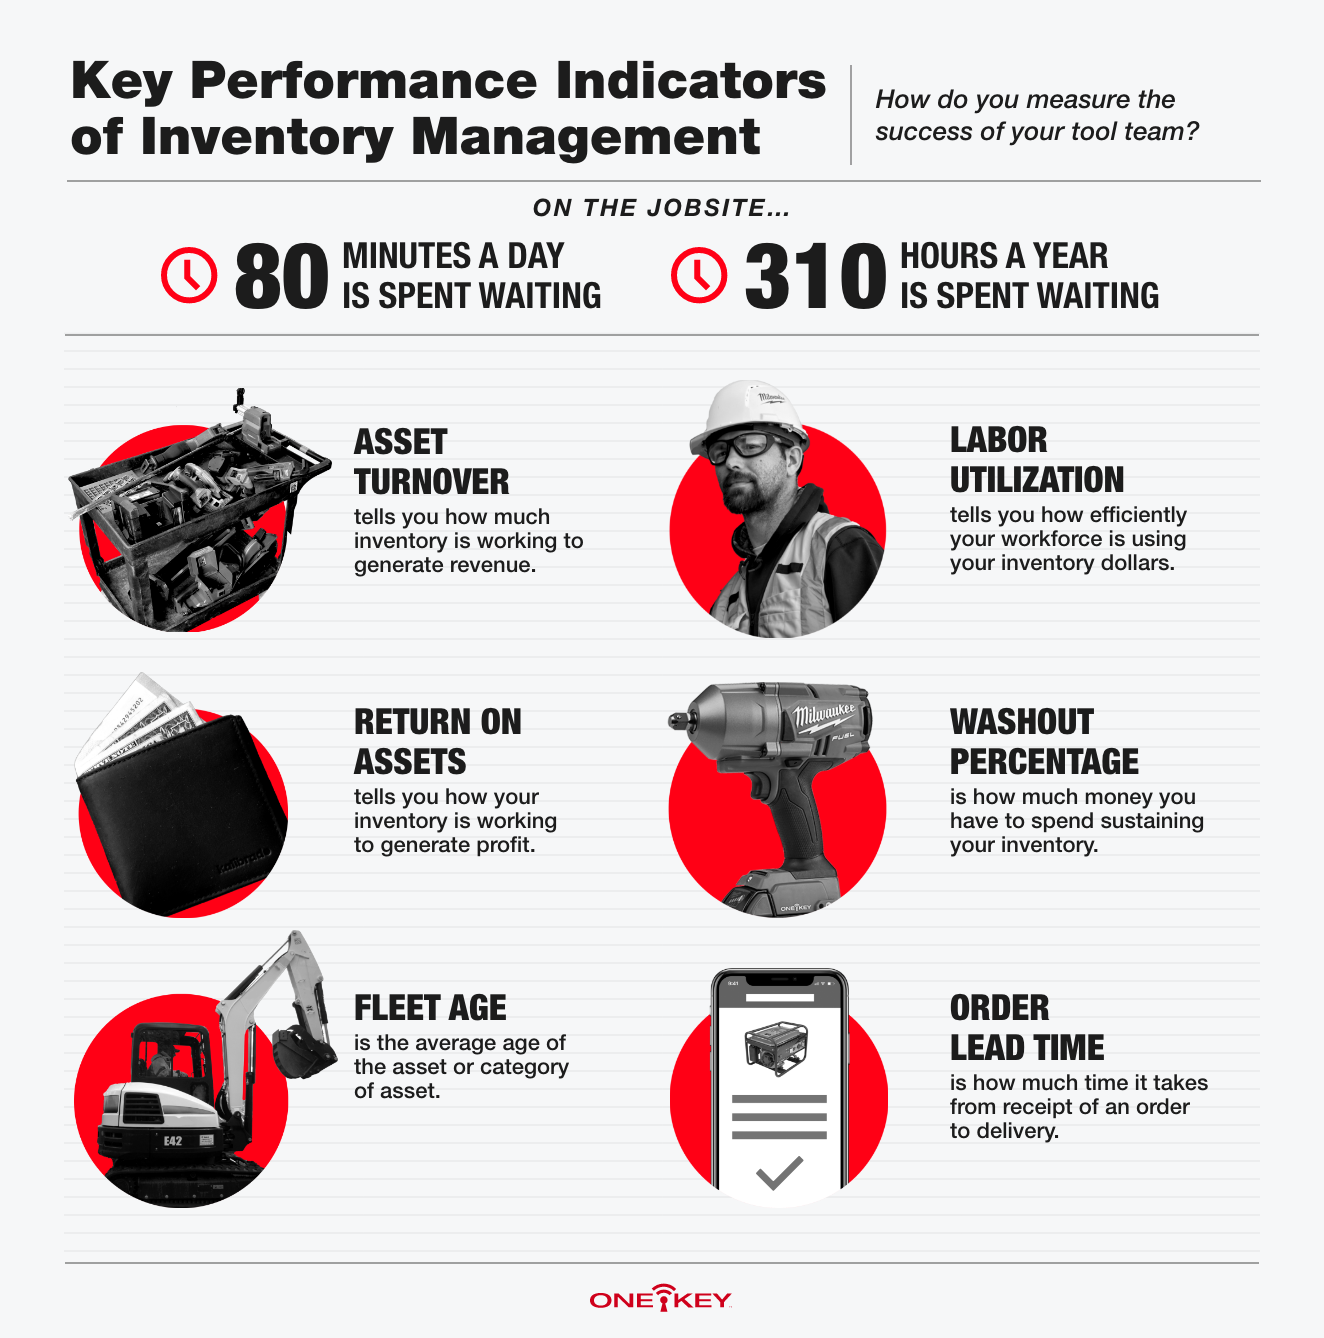 An infographic focuses on inventory management KPIs: asset turnover, return, labor, washout, fleet age, and order lead time